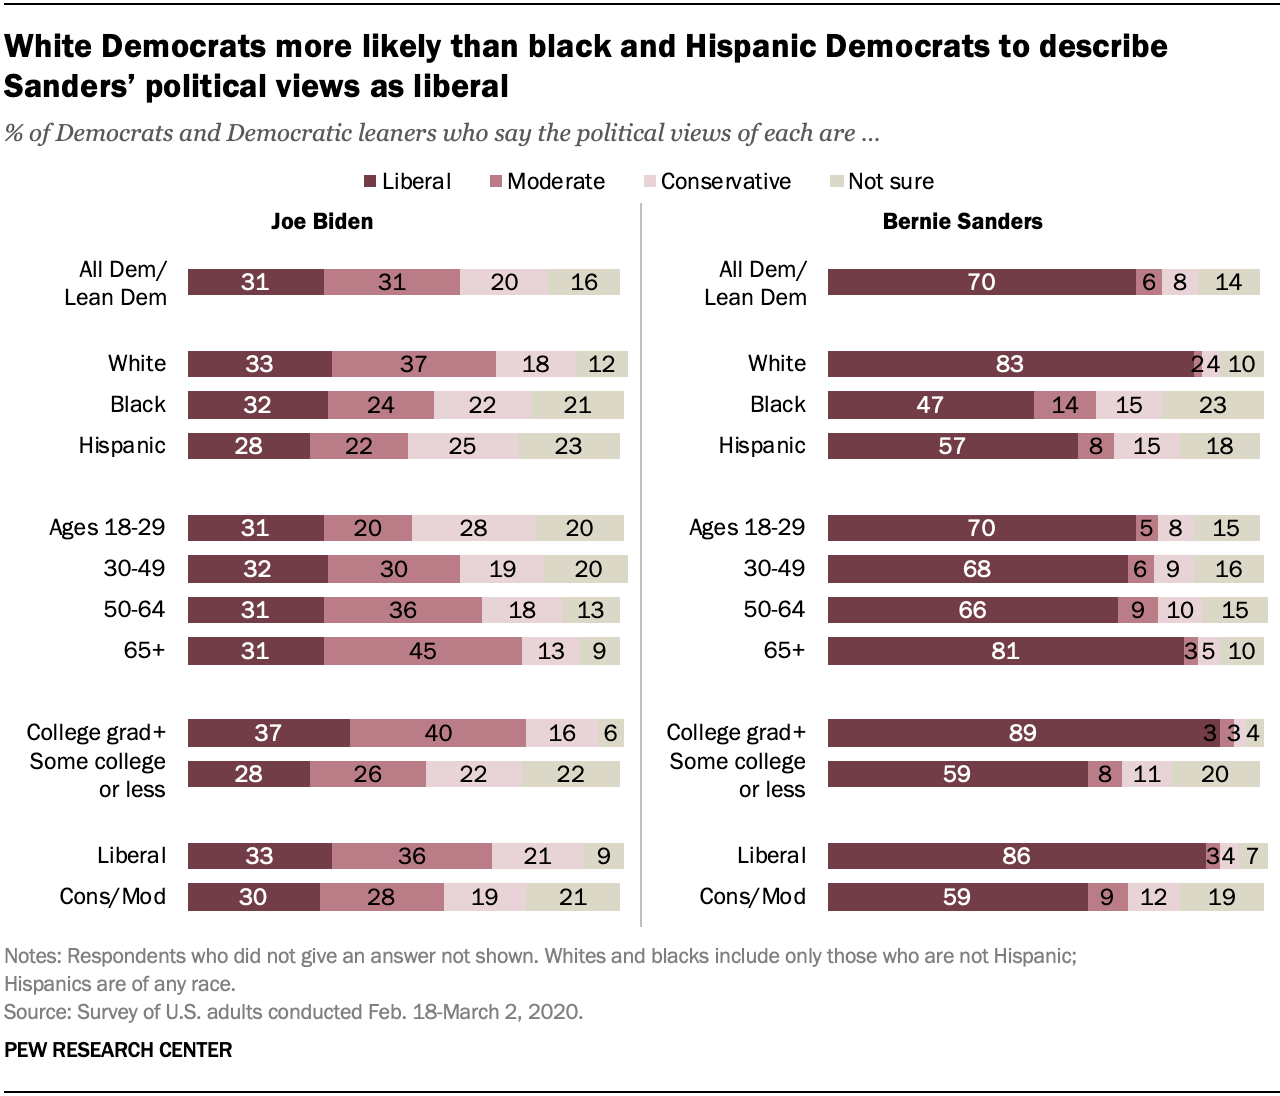 White Democrats more likely than black and Hispanic Democrats to describe Sanders' political views as liberal